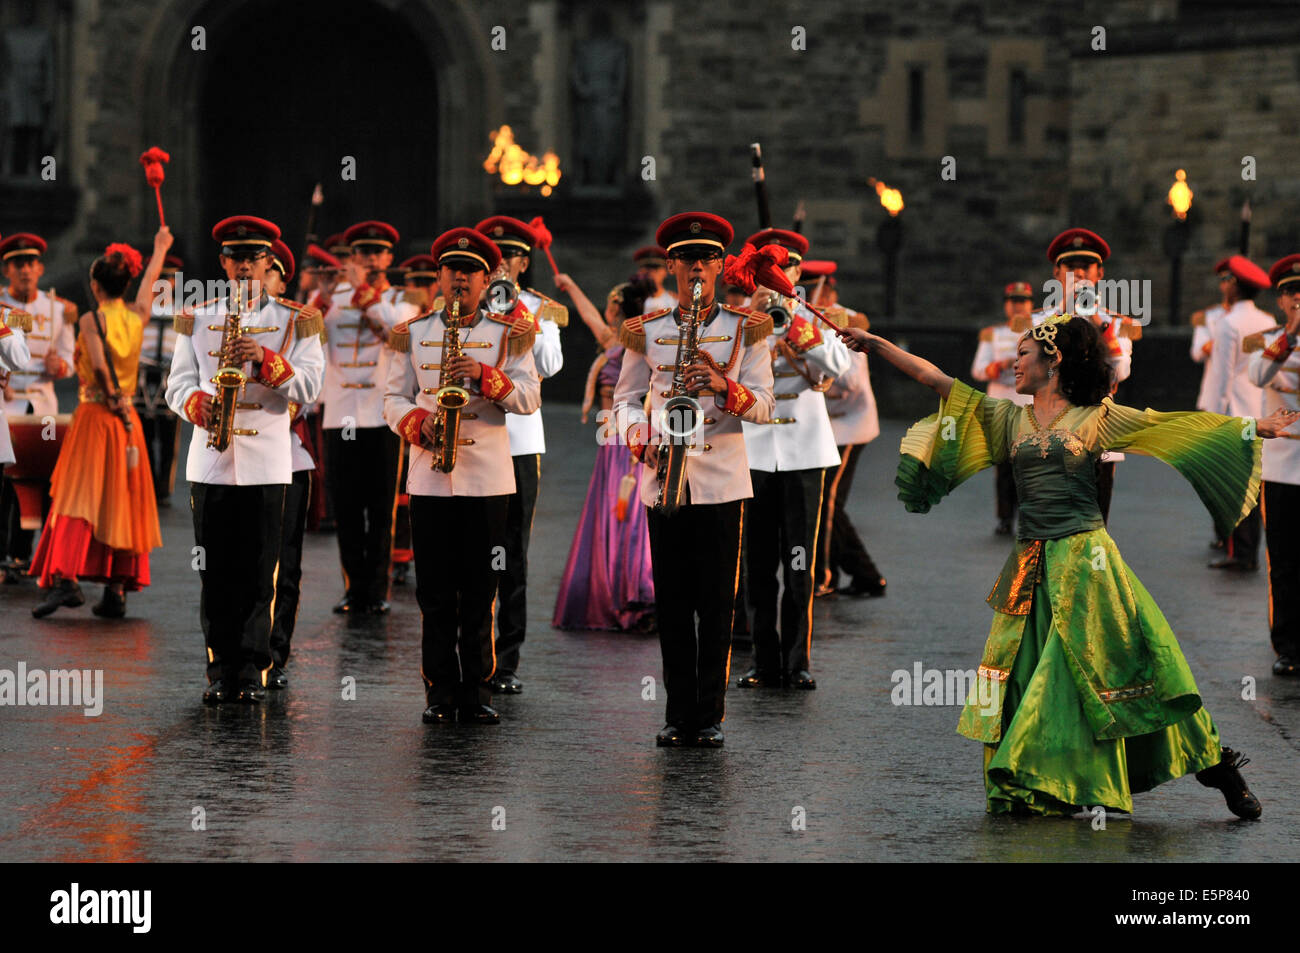 Edinburgh, Scotland, UK. 2nd August 2014. The Royal Edinburgh Military Tattoo takes place on the esplanade of the Stock Photo